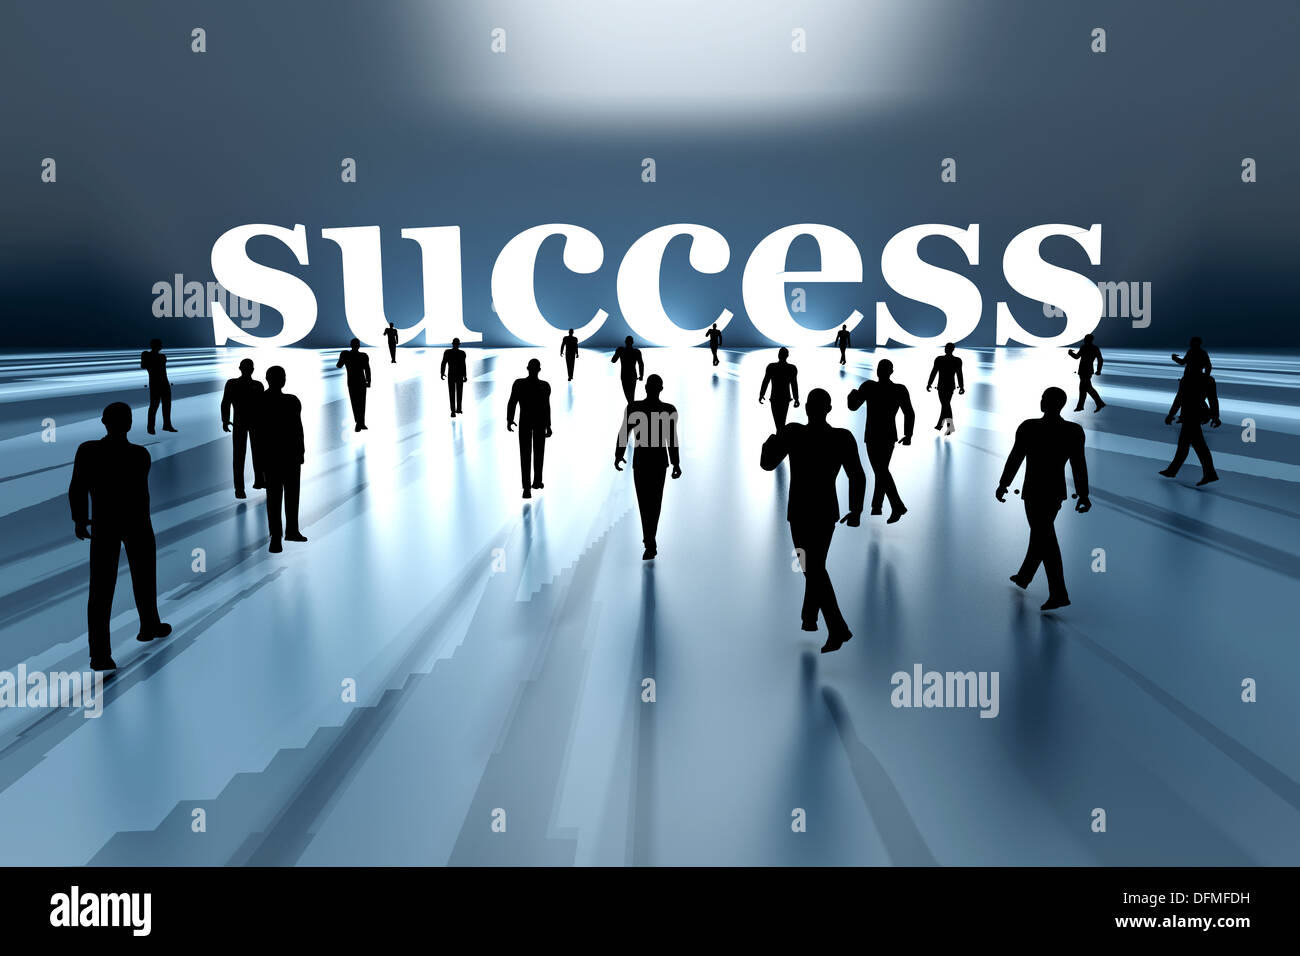 Walking Towards Success 3d Rendered Illustration Stock